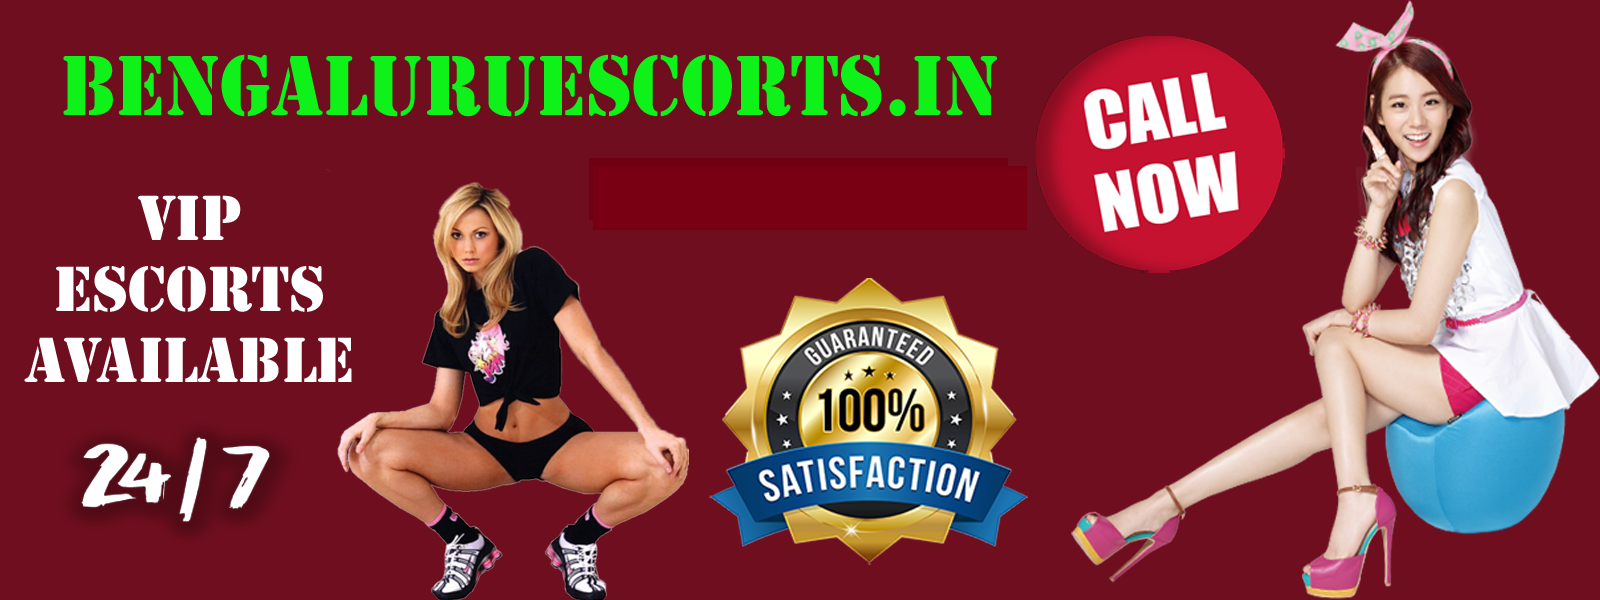 escort services in bangalore